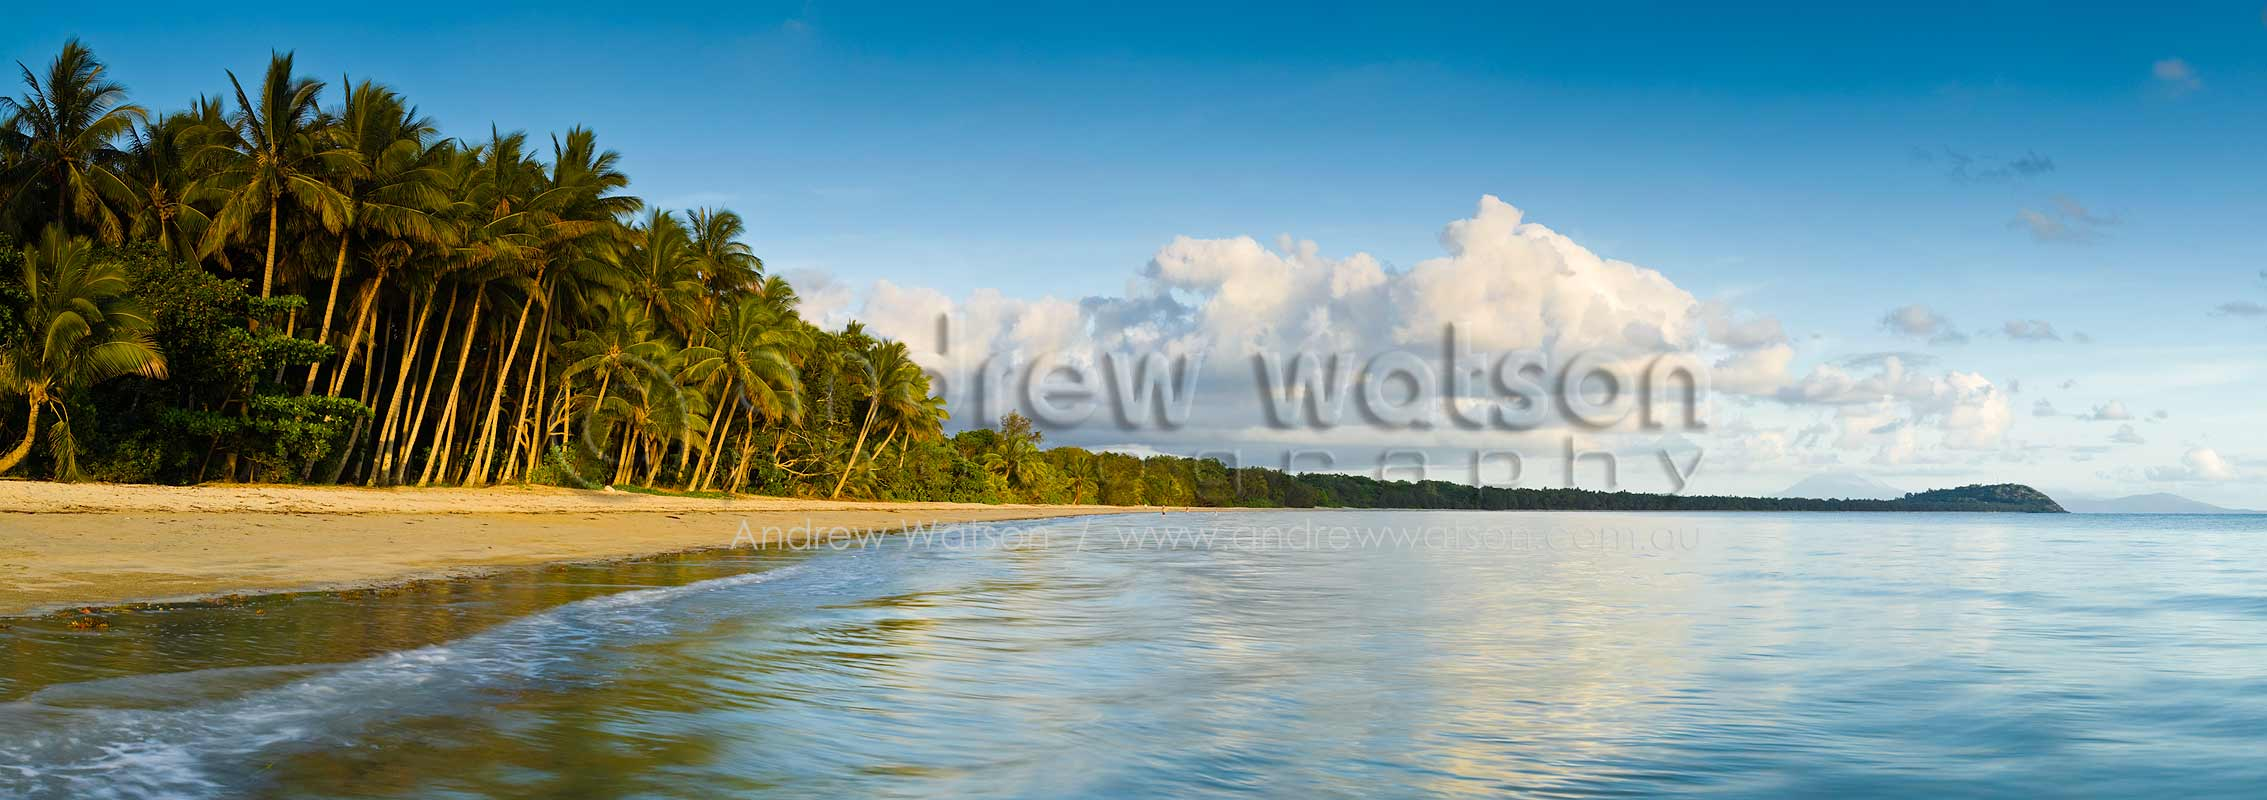 View along Four Mile Beach at dawnPort Douglas, North QueenslandImage available for licensing or as a fine-art print... please enquire